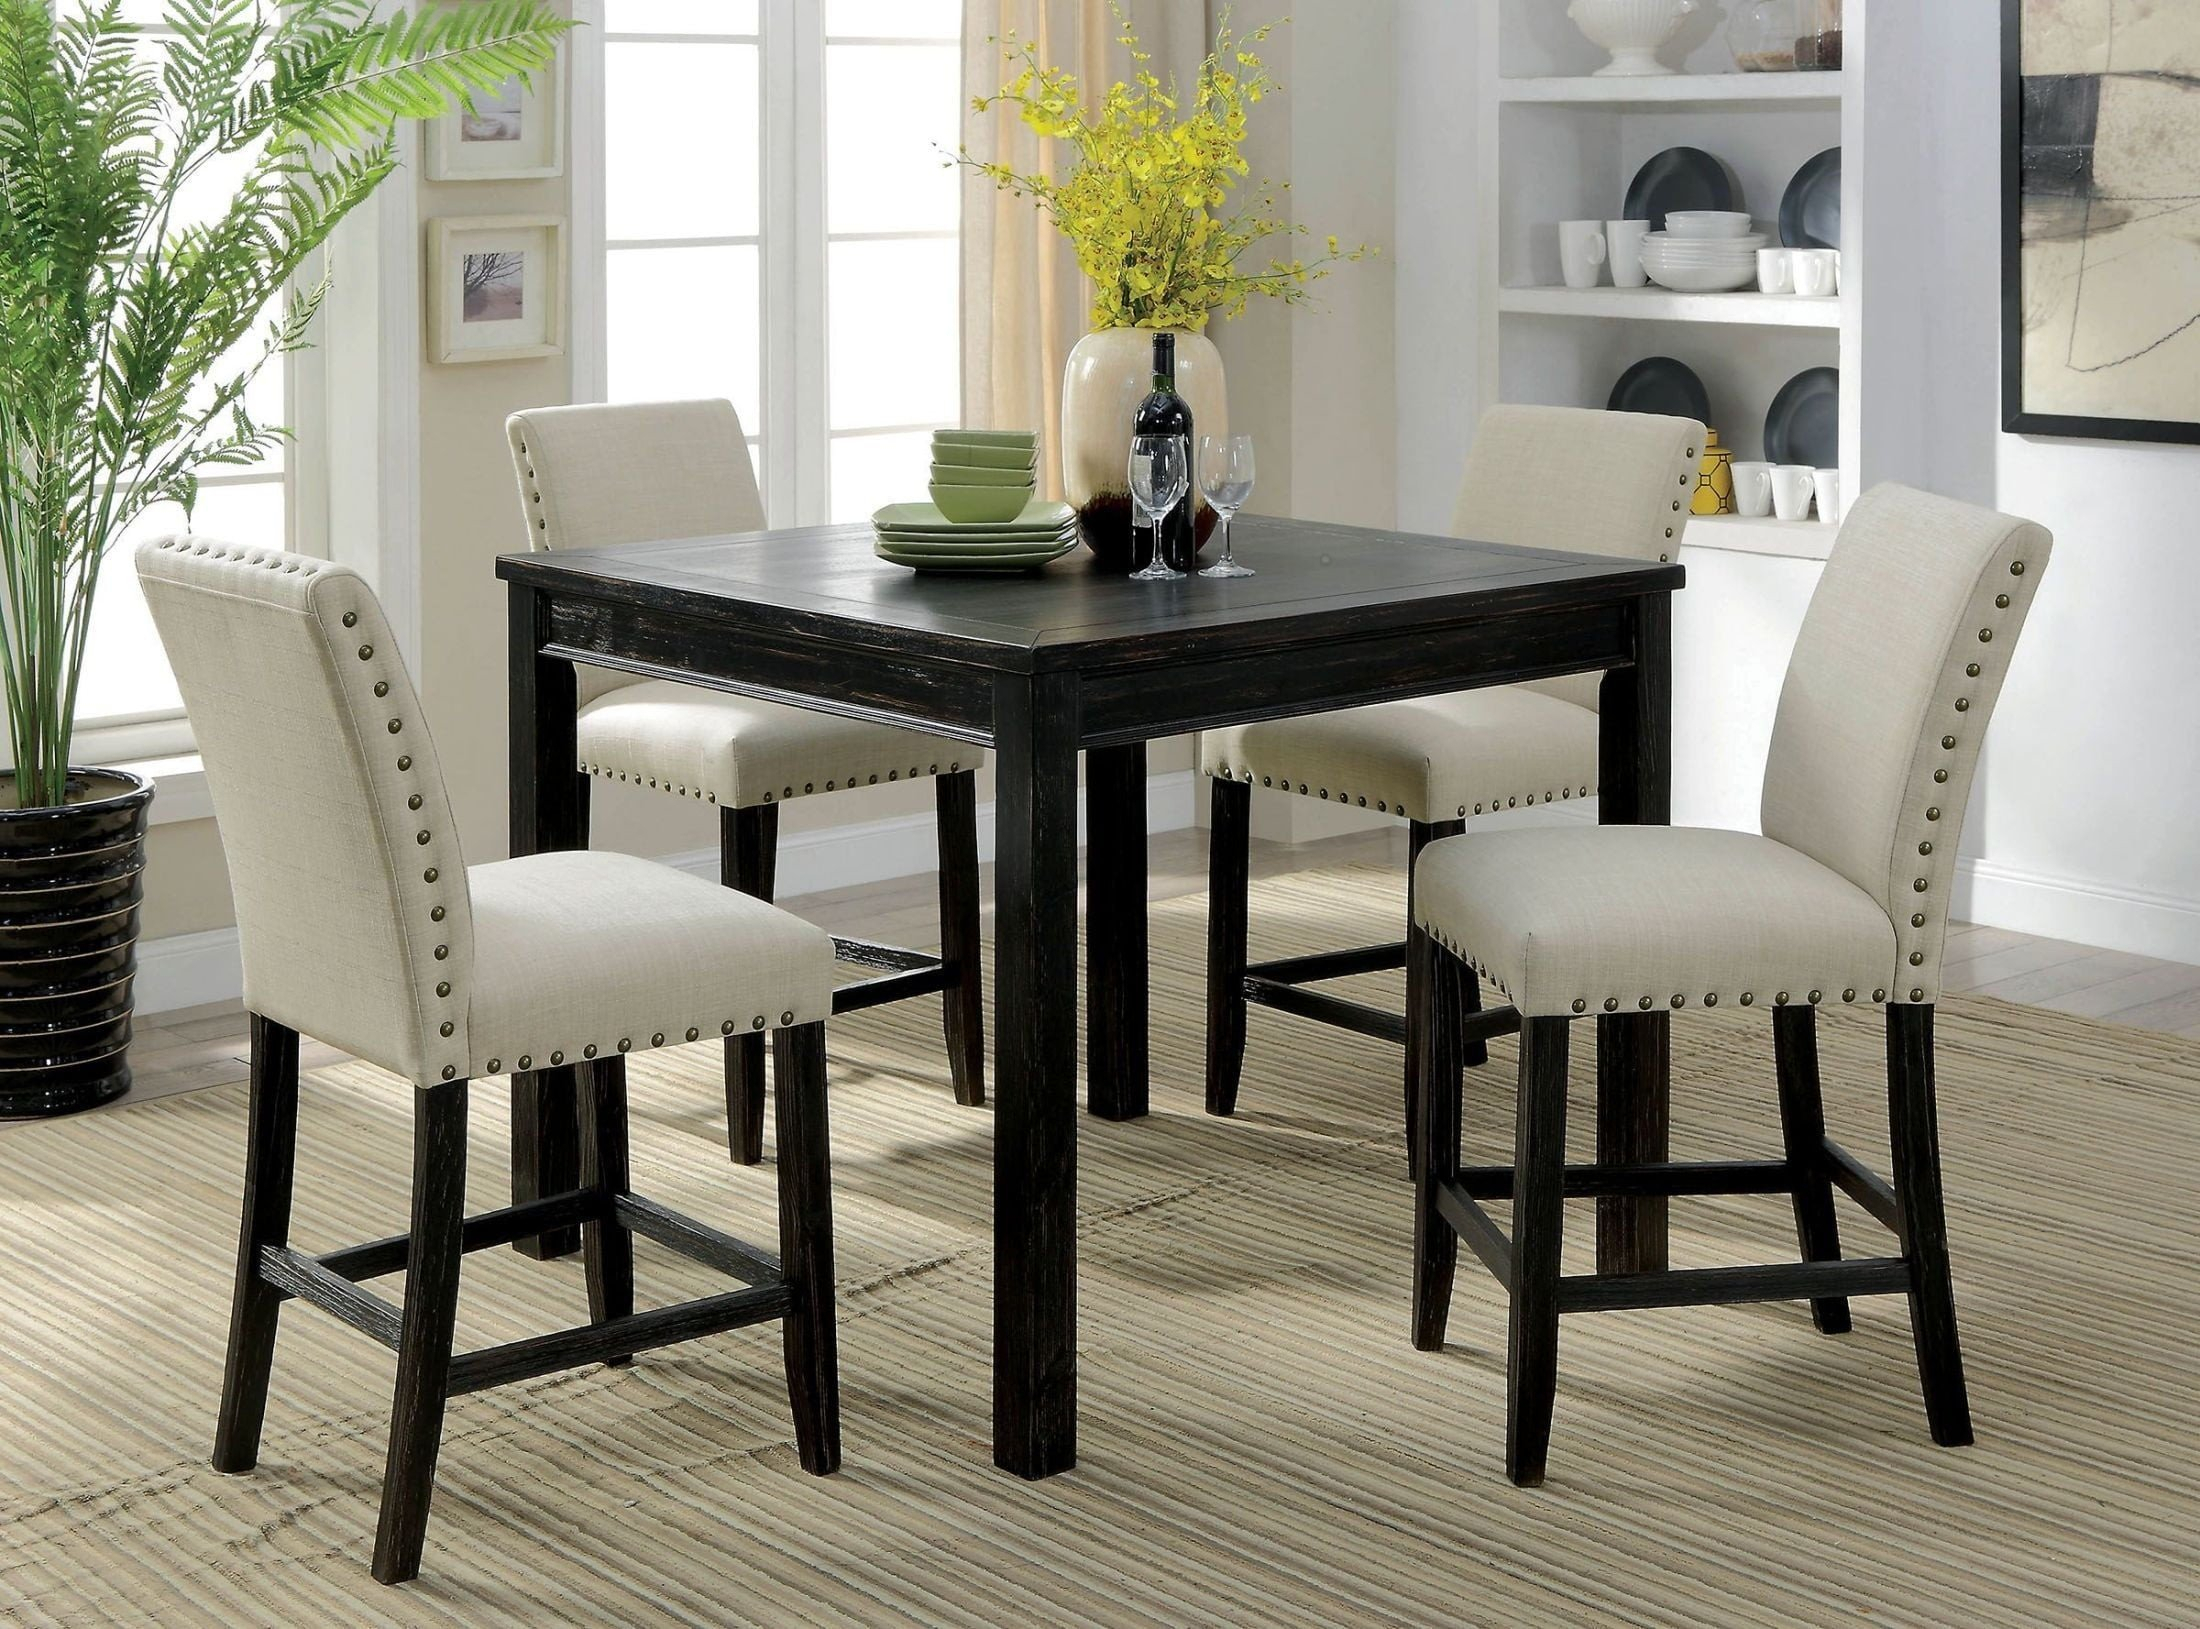 Kristie Antique Black Counter Height Dining Table Set Inside Recent Counter Height Dining Tables (View 3 of 15)